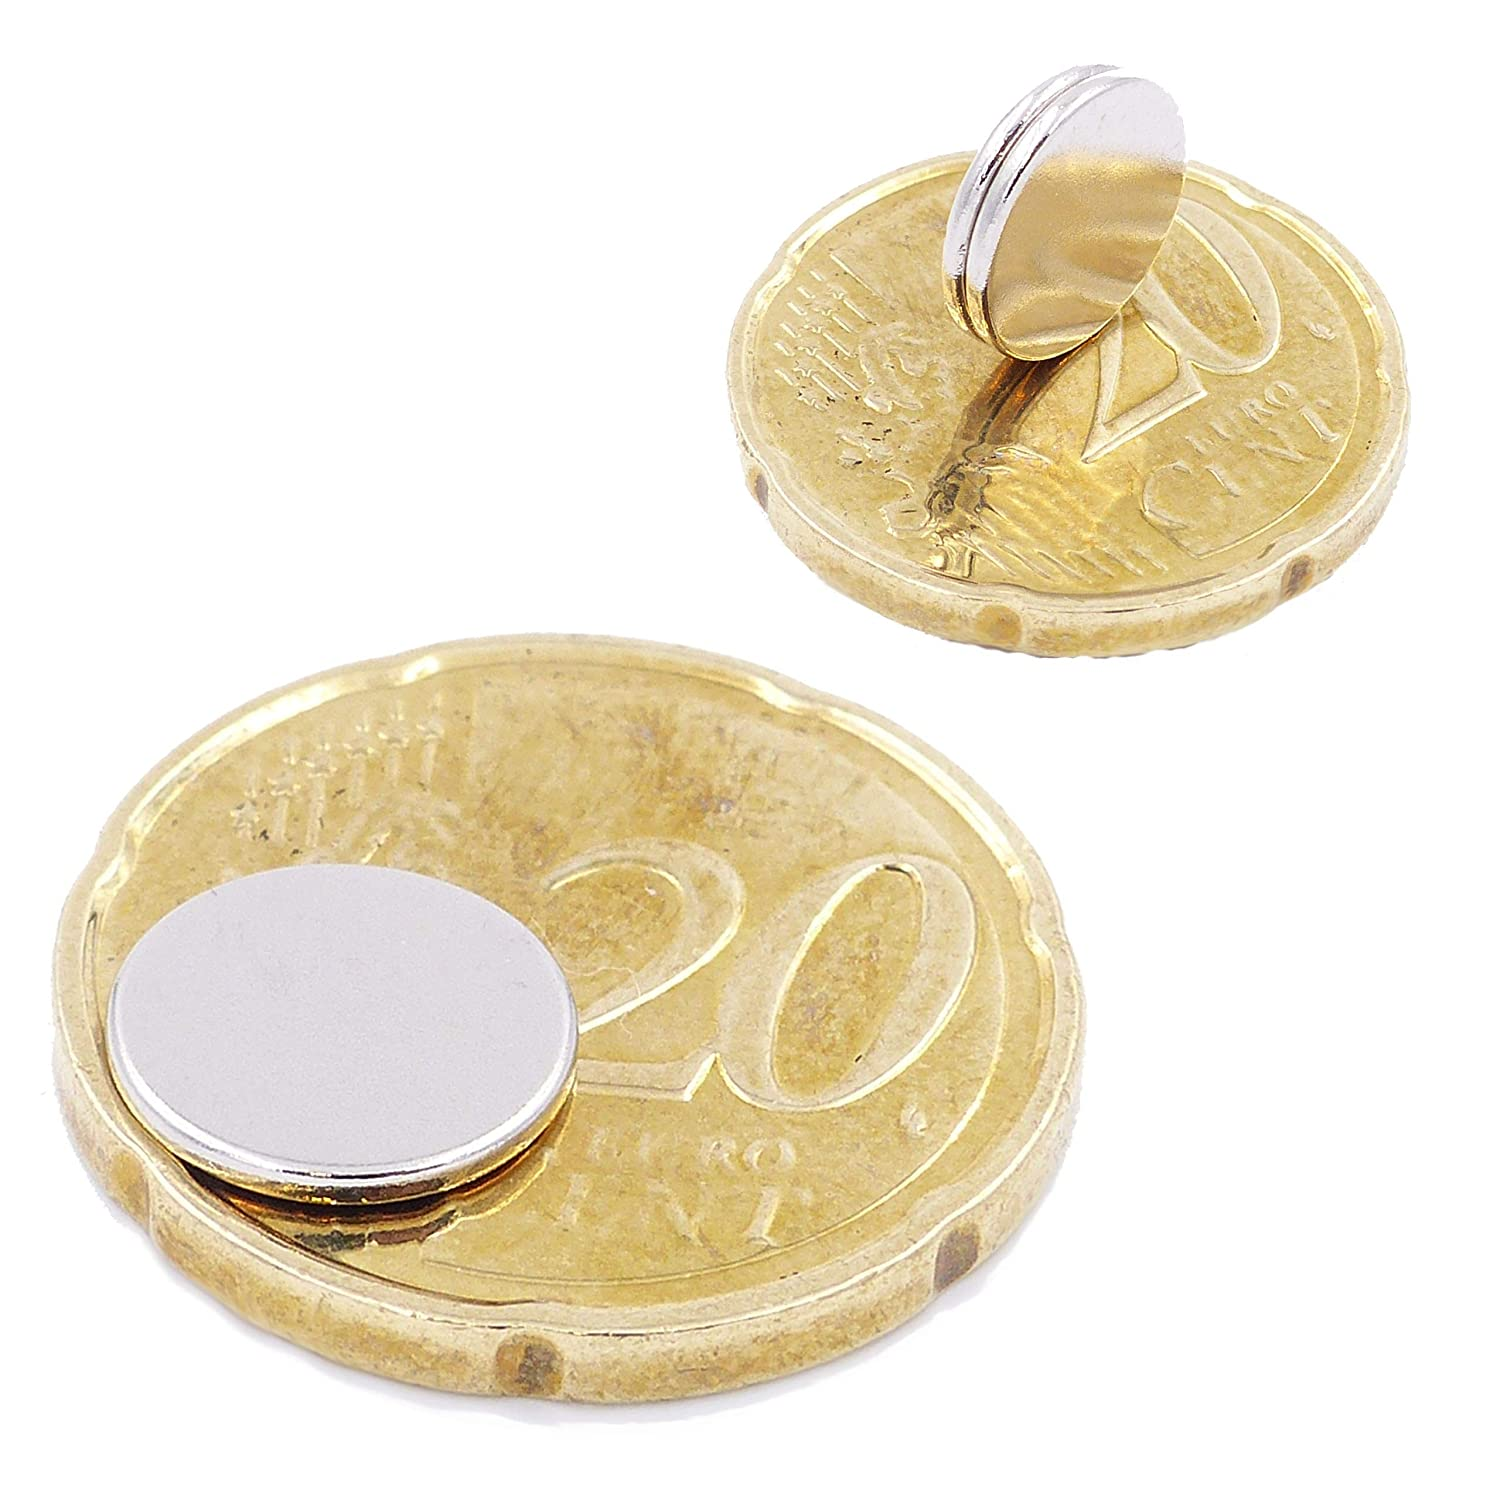 Photo small N52 strongest level Crafting 25 Mini Disc Magnets 8x5mm Neodymium Magnets super strong Brudazon Power Magnet for Model Making Whiteboard round /& extra strong Refrigerator